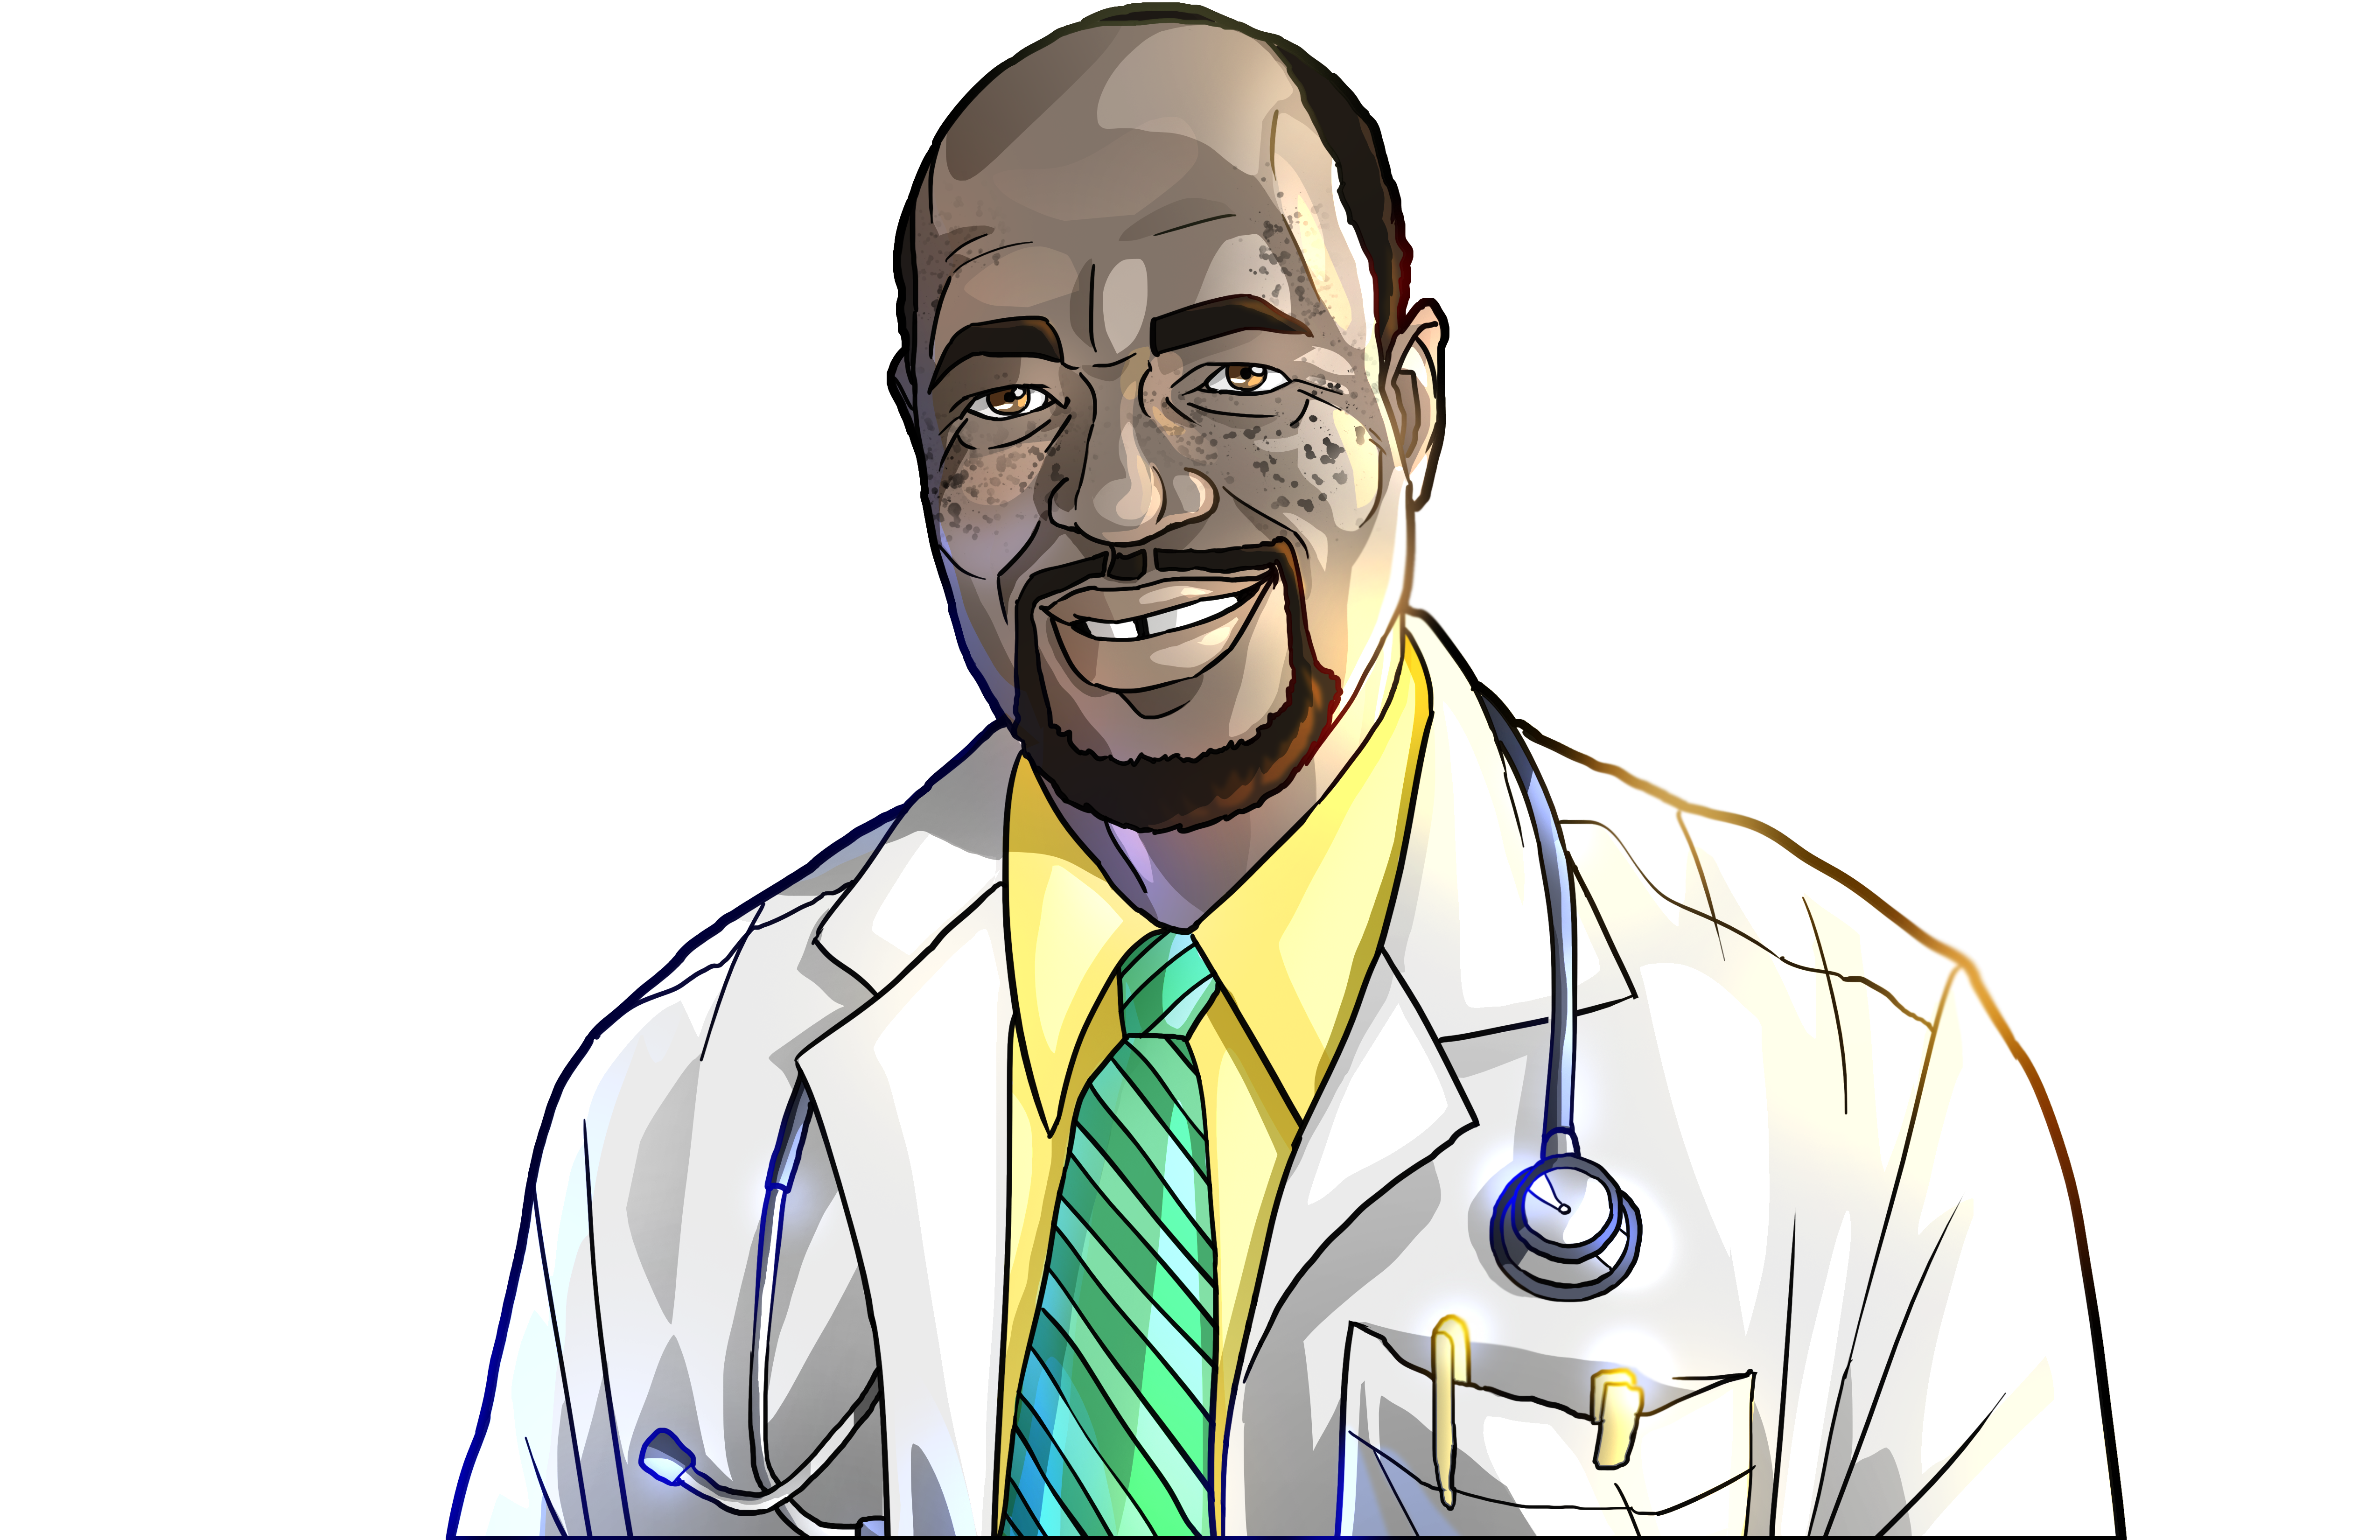 Black doctor png. Doctors illustrations skillscommons repository